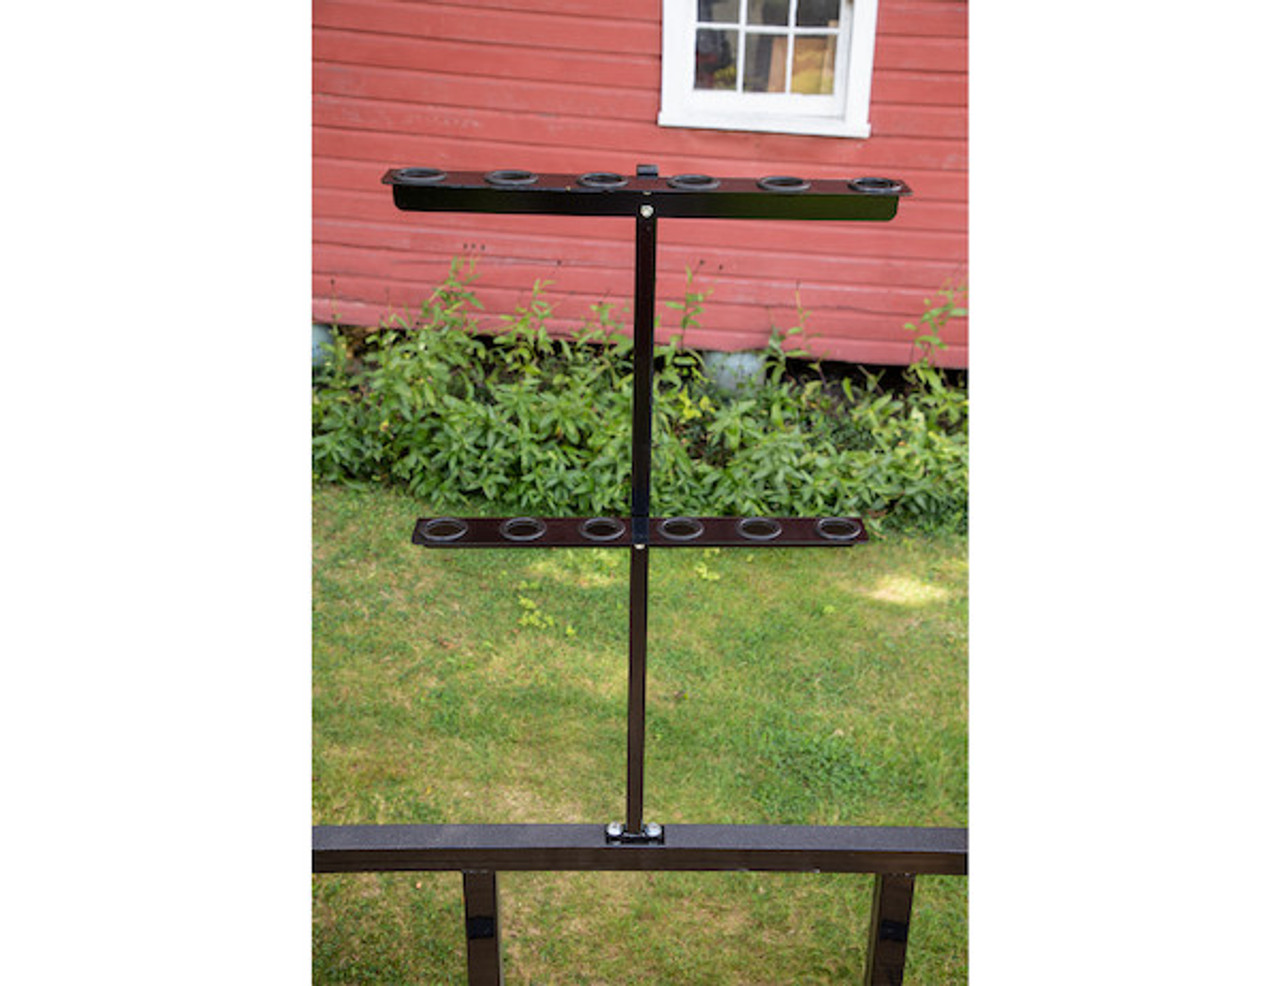 Buyers LT35 Vertical Hand Tool Rack for Landscaping Trailers, Garages, Sheds, Construction Vehicles Picture # 7